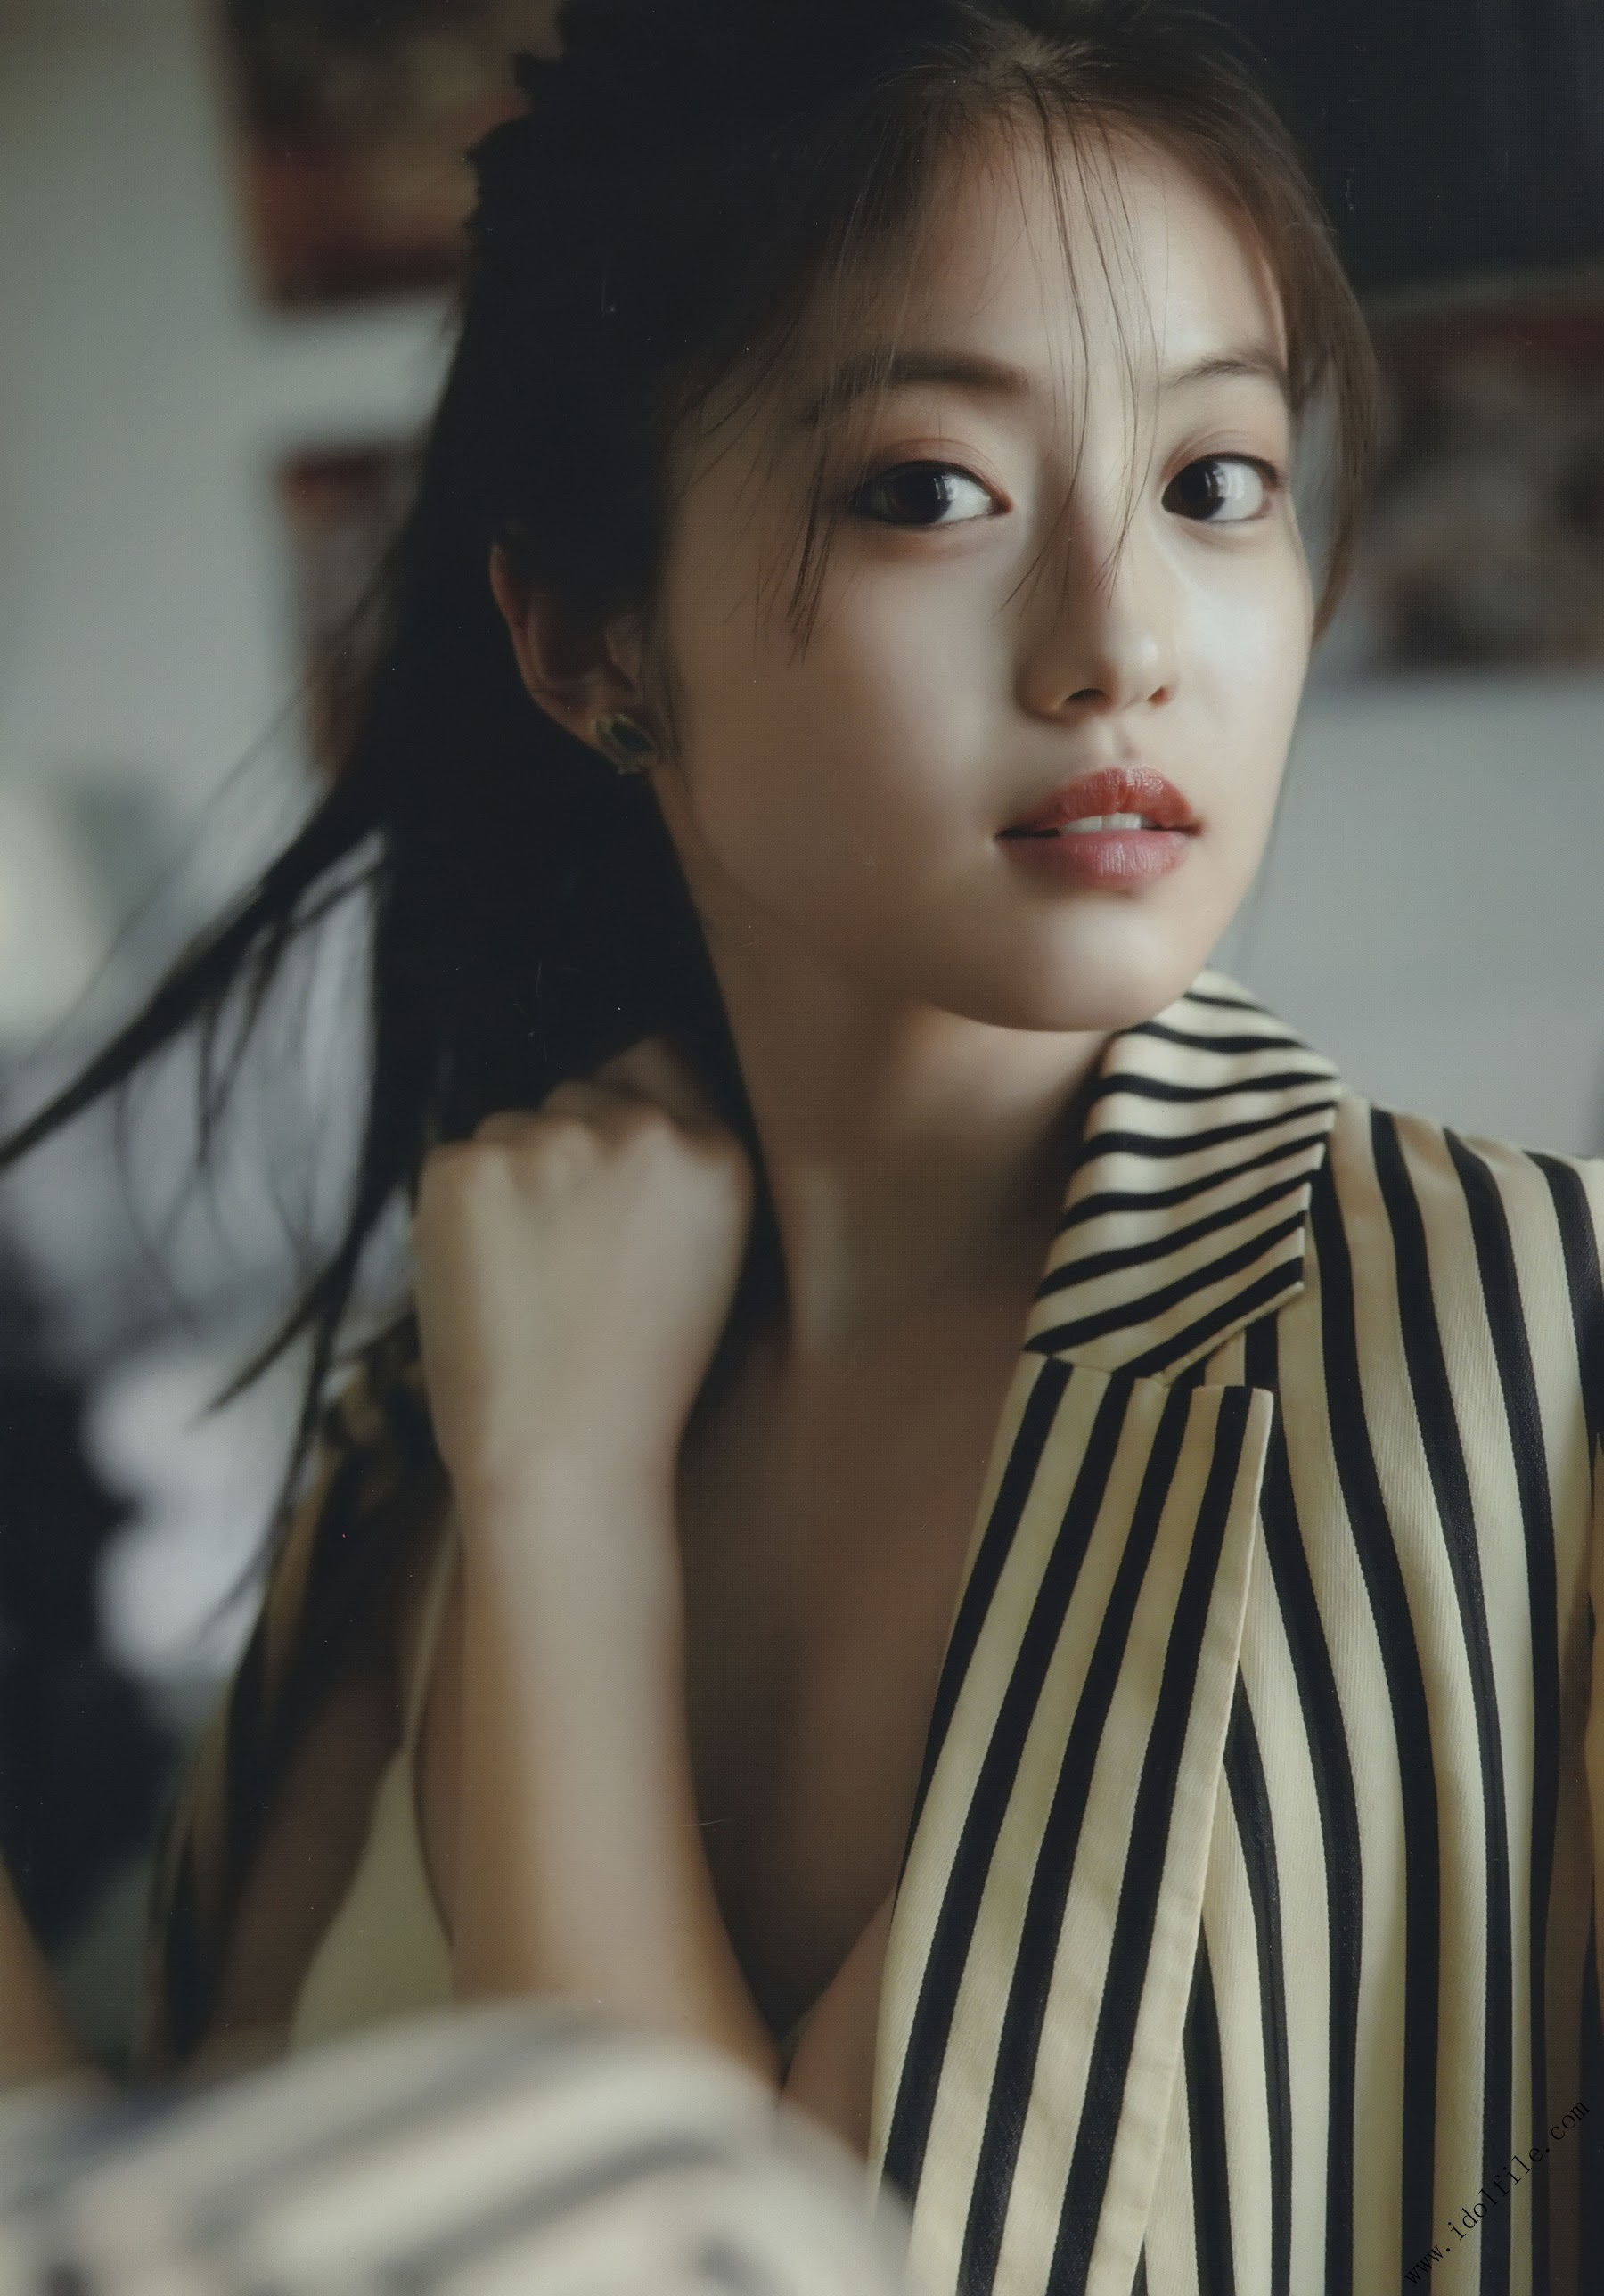 Pretty and beautiful, 22 years old and innocent Moving to the next stage as an actress Mio Imada120